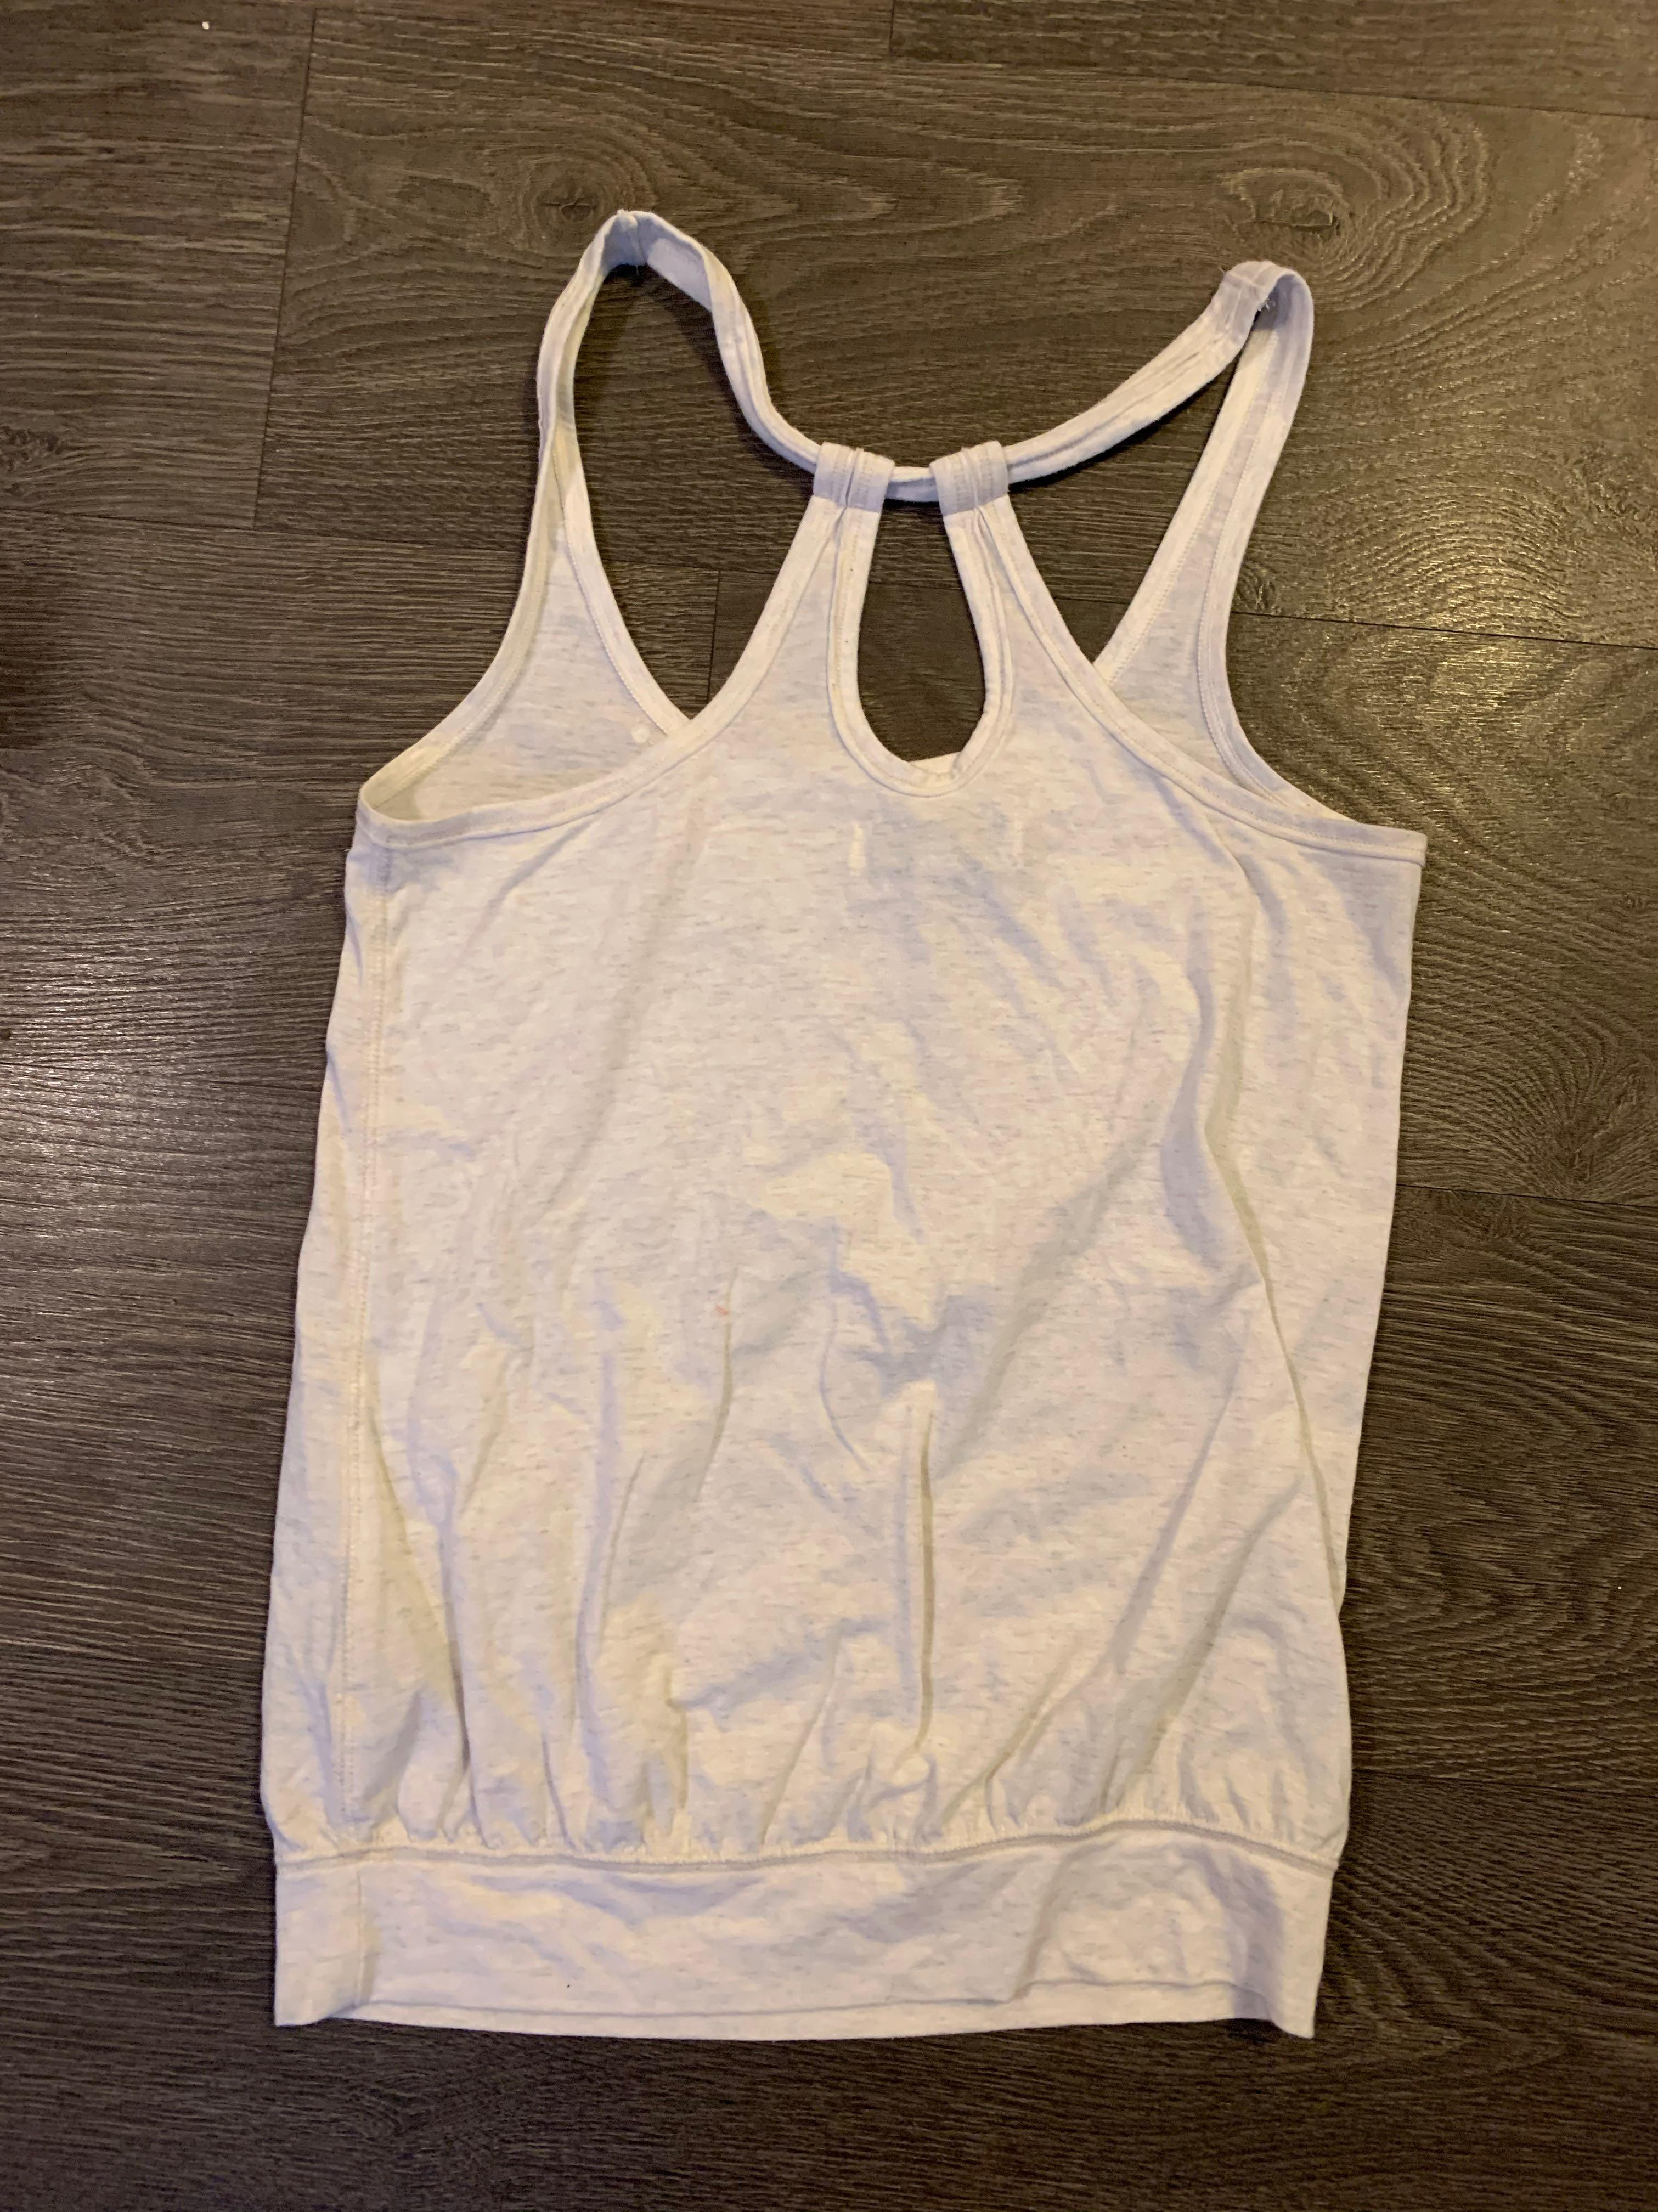 Abercrombie and Fitch embellished tank size xs kids L